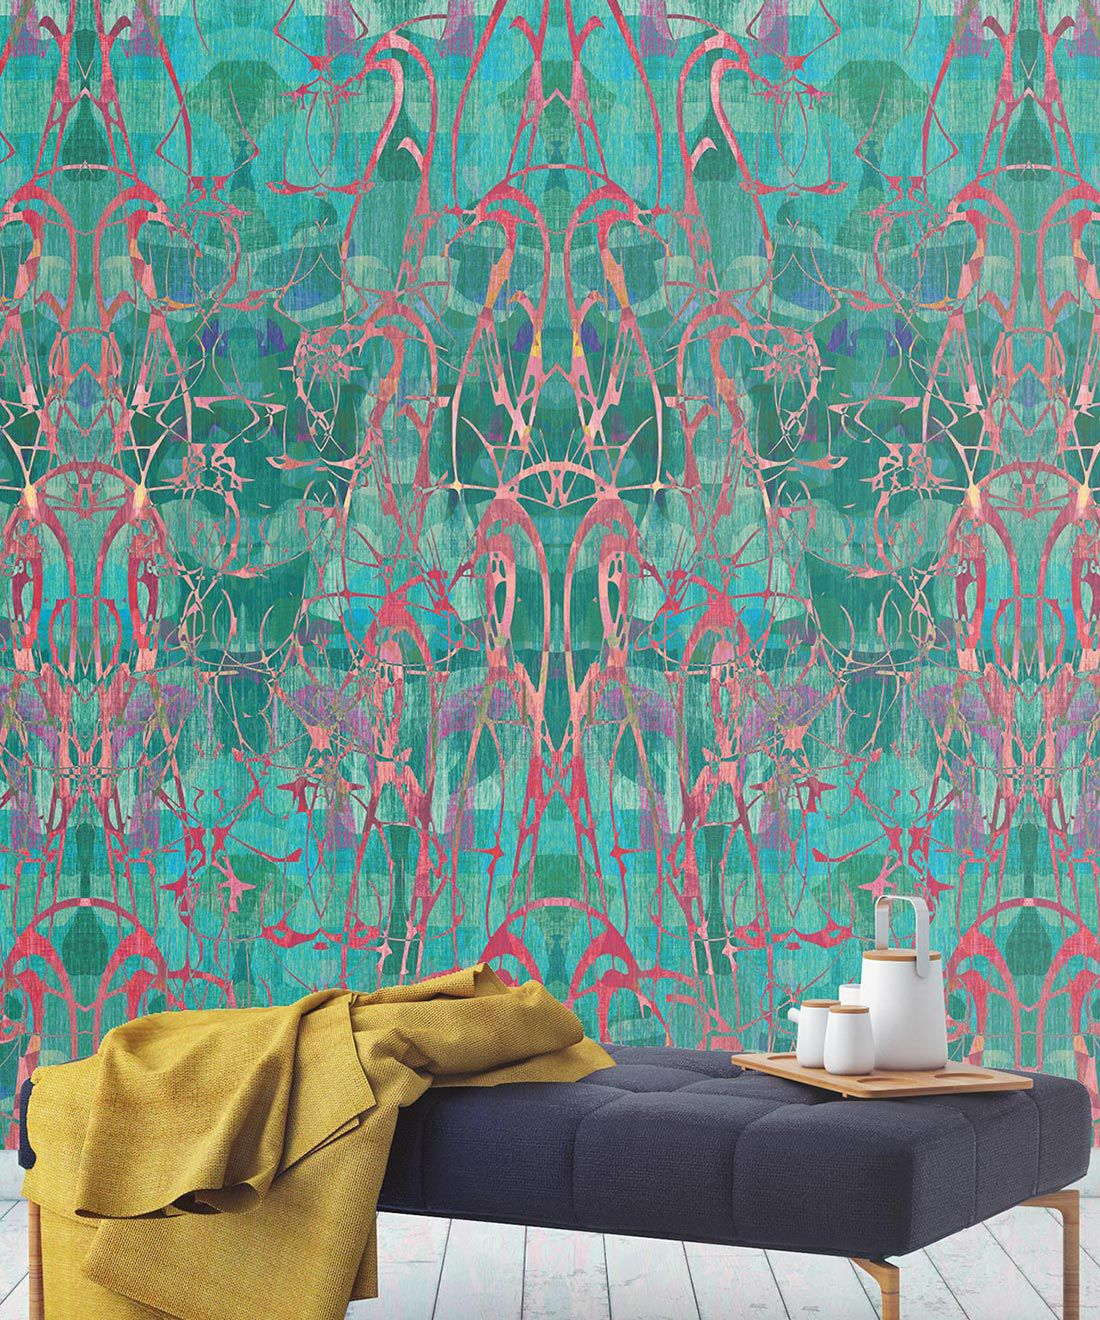 Camoufleur Wallpaper • Rainforest • Teal Wallpaper • Abstract Wallpaper insitu